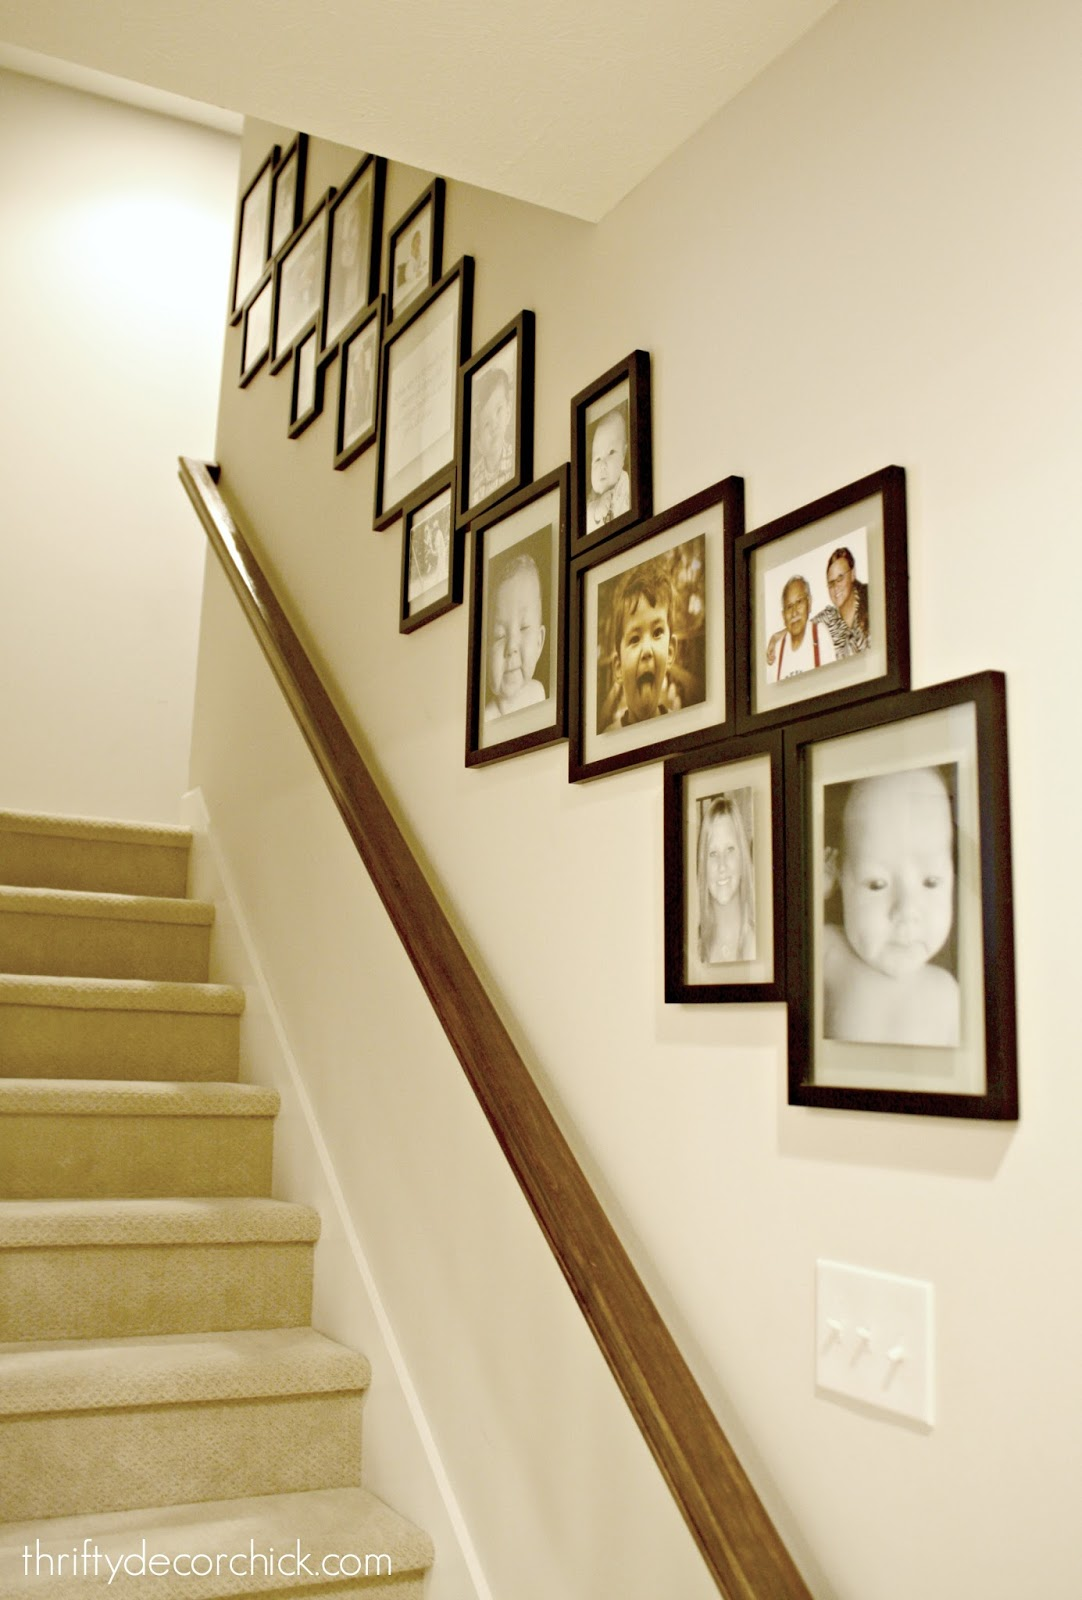 Gallery wall with frames touching